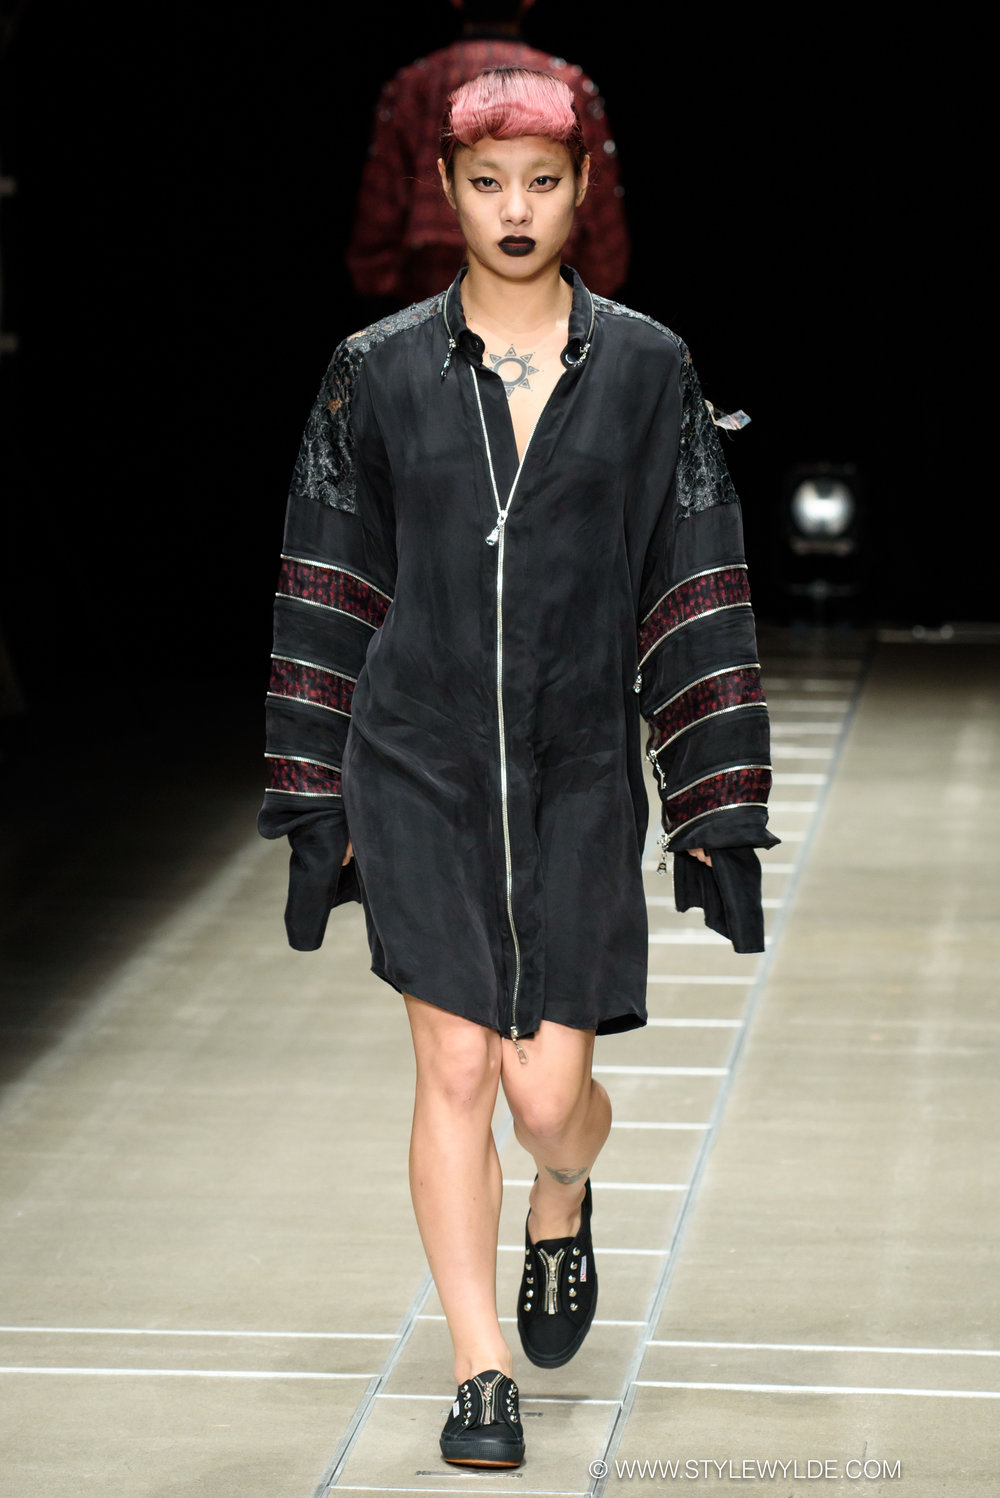 stylewylde_acuod_by_chanu_SS18_runway-16.jpg